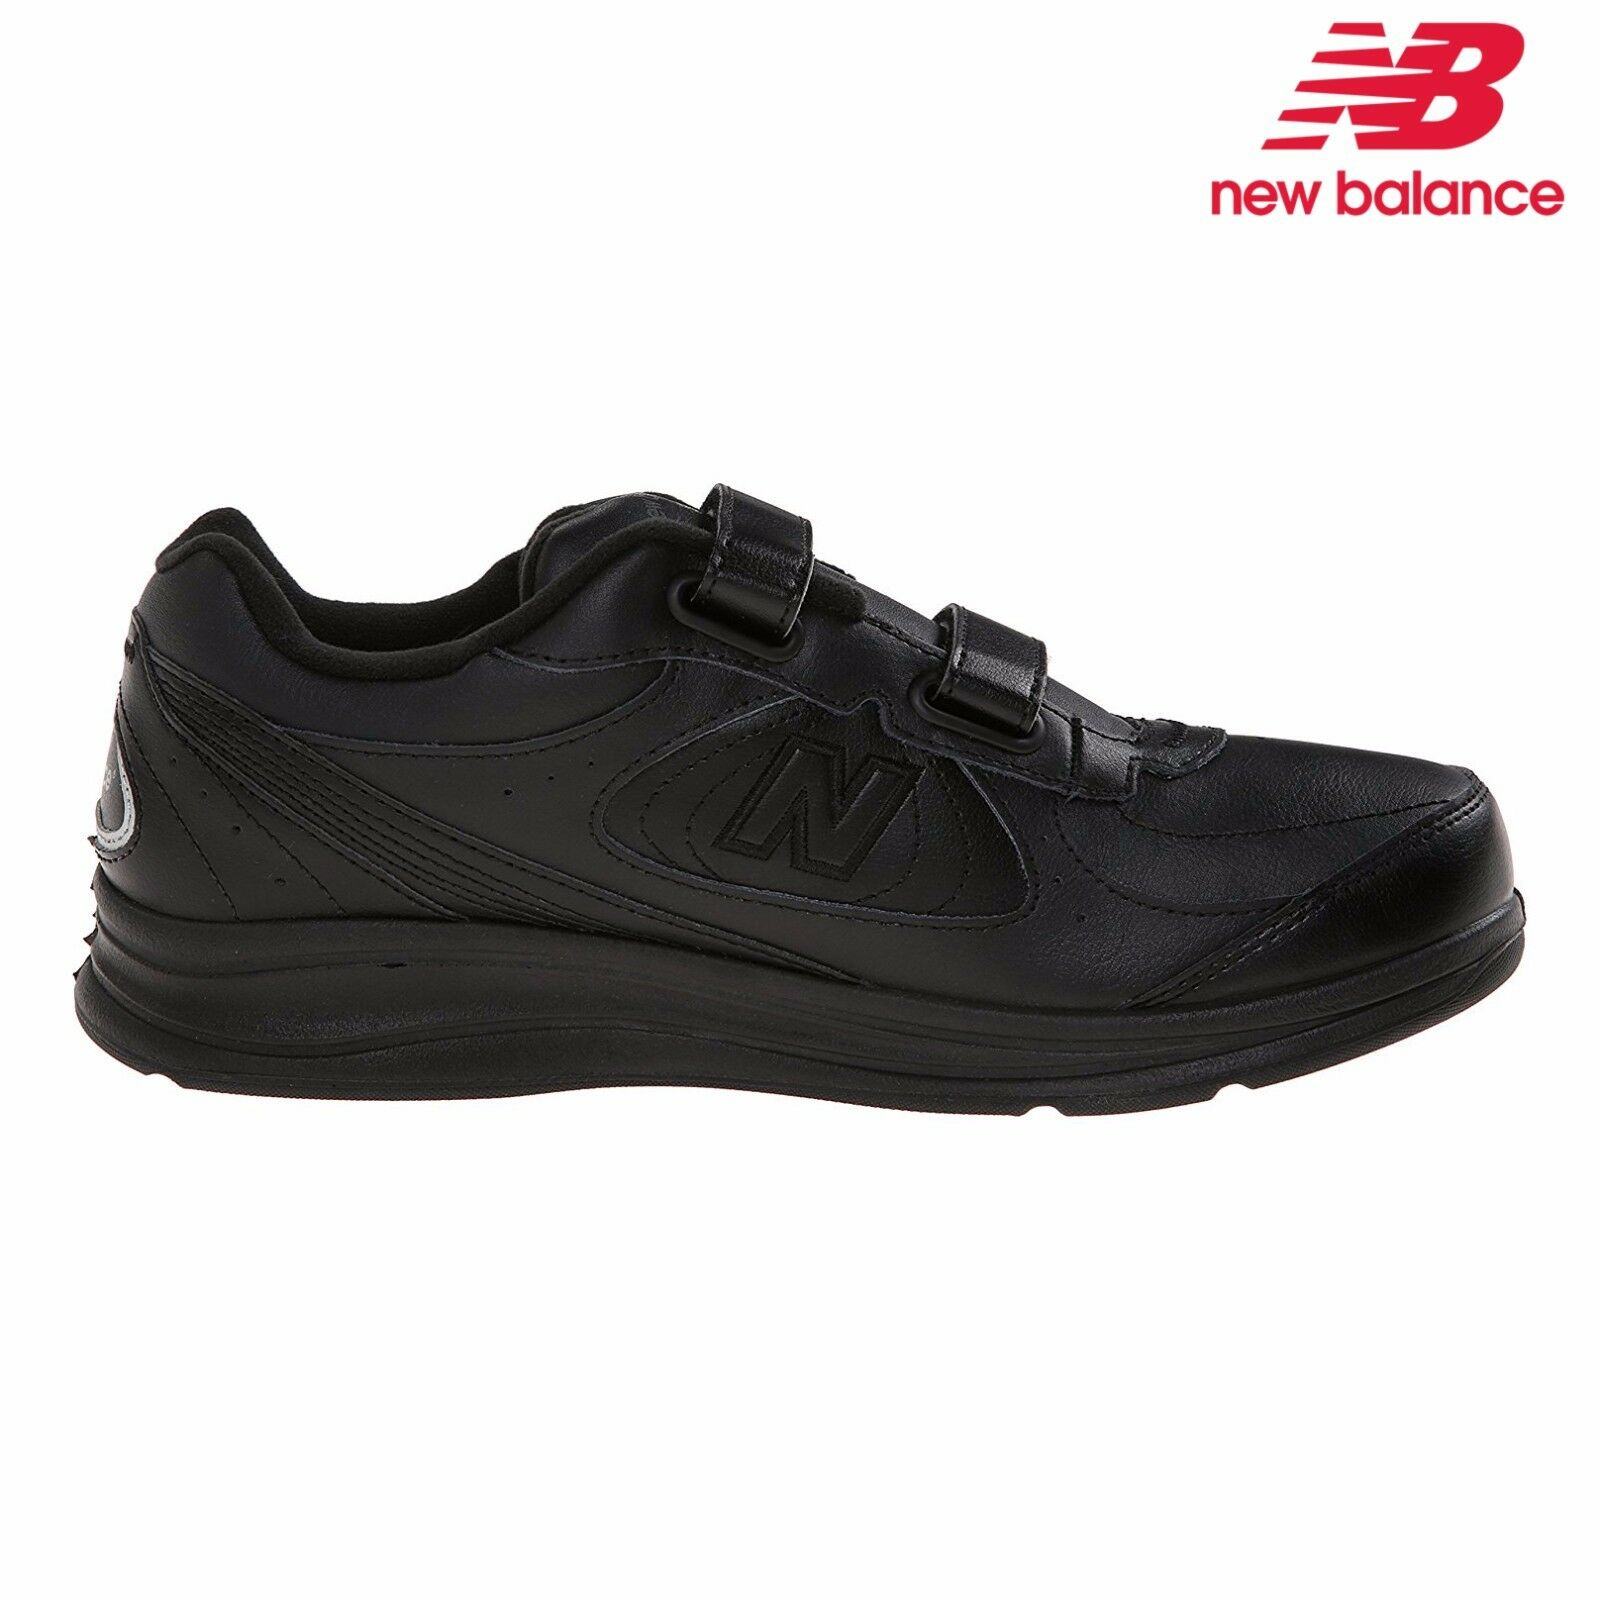 Men's New Balance MW577 Comfy Walking shoes Hook BLK Leather All SZ NIB XMW577VK